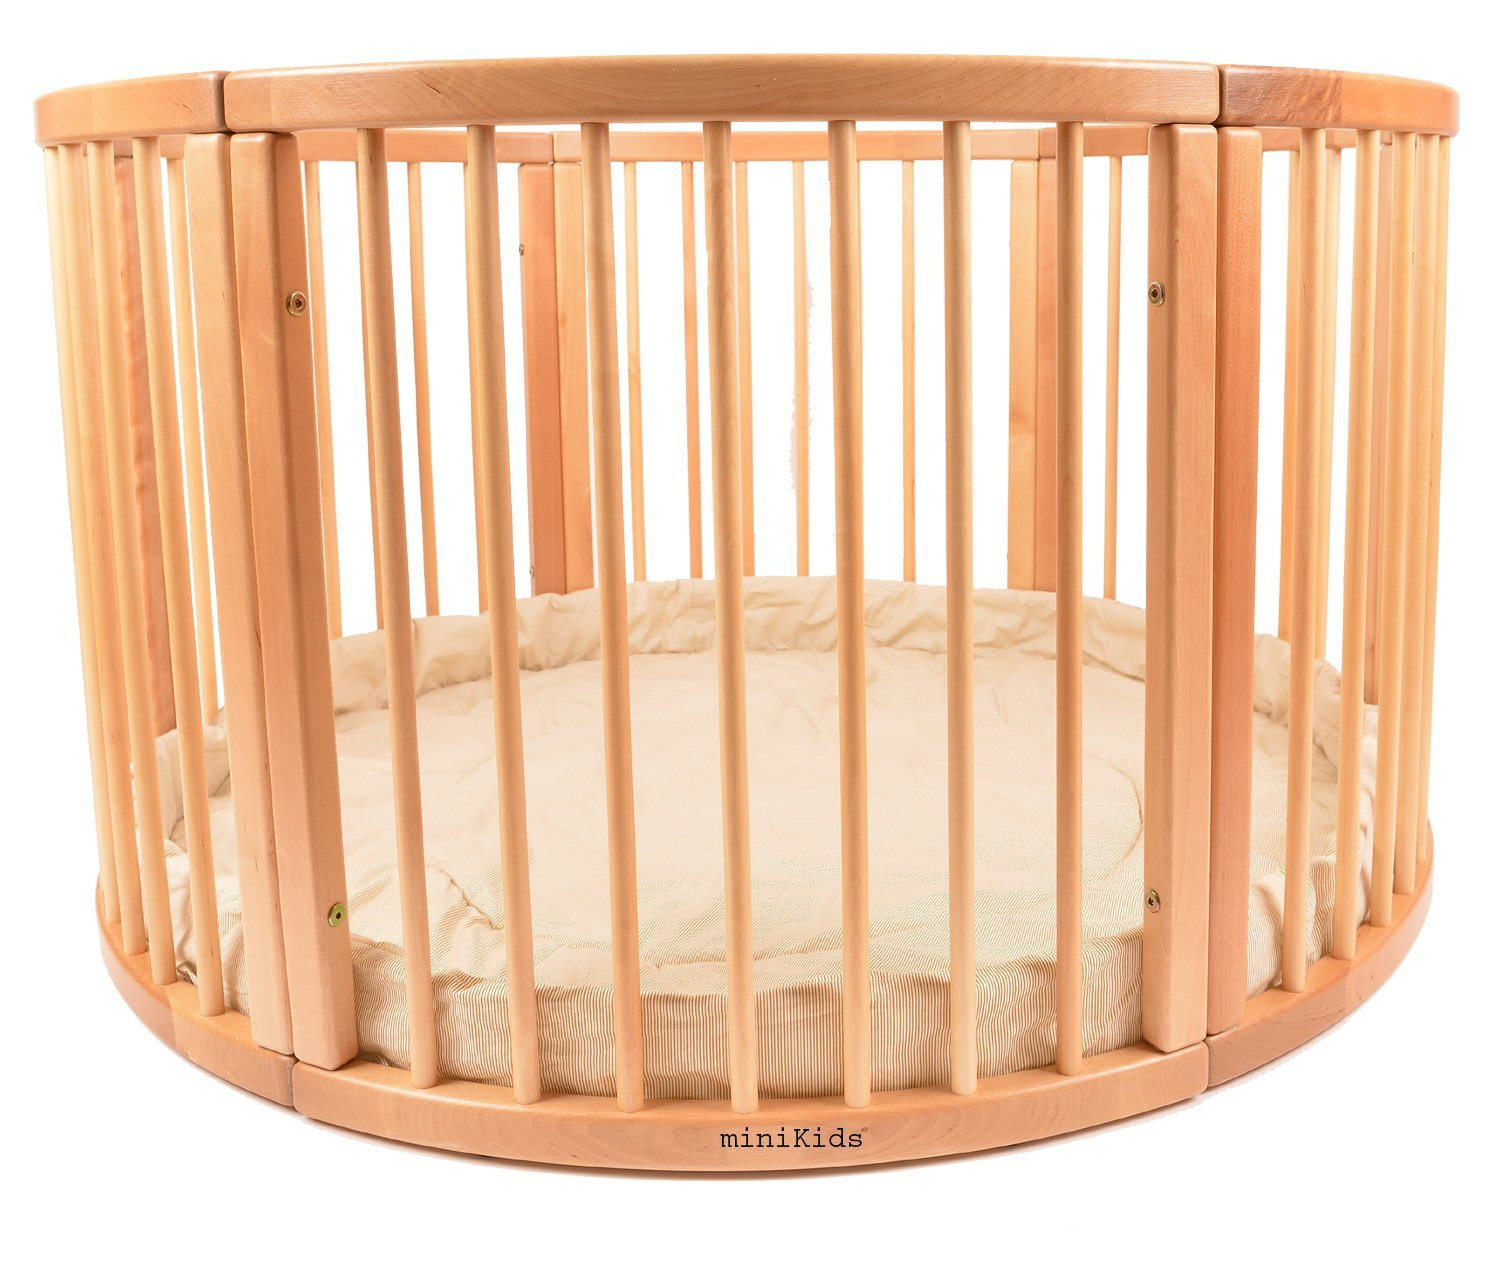 VERY LARGE WOODEN BABY PLAYPEN (Ø 120cm) WITH PLAYMAT (Stripes) miniKids Height 70 cm approx; Ø 120cm Playpen from ALANEL MADE IN EUROPE including Playmat 2